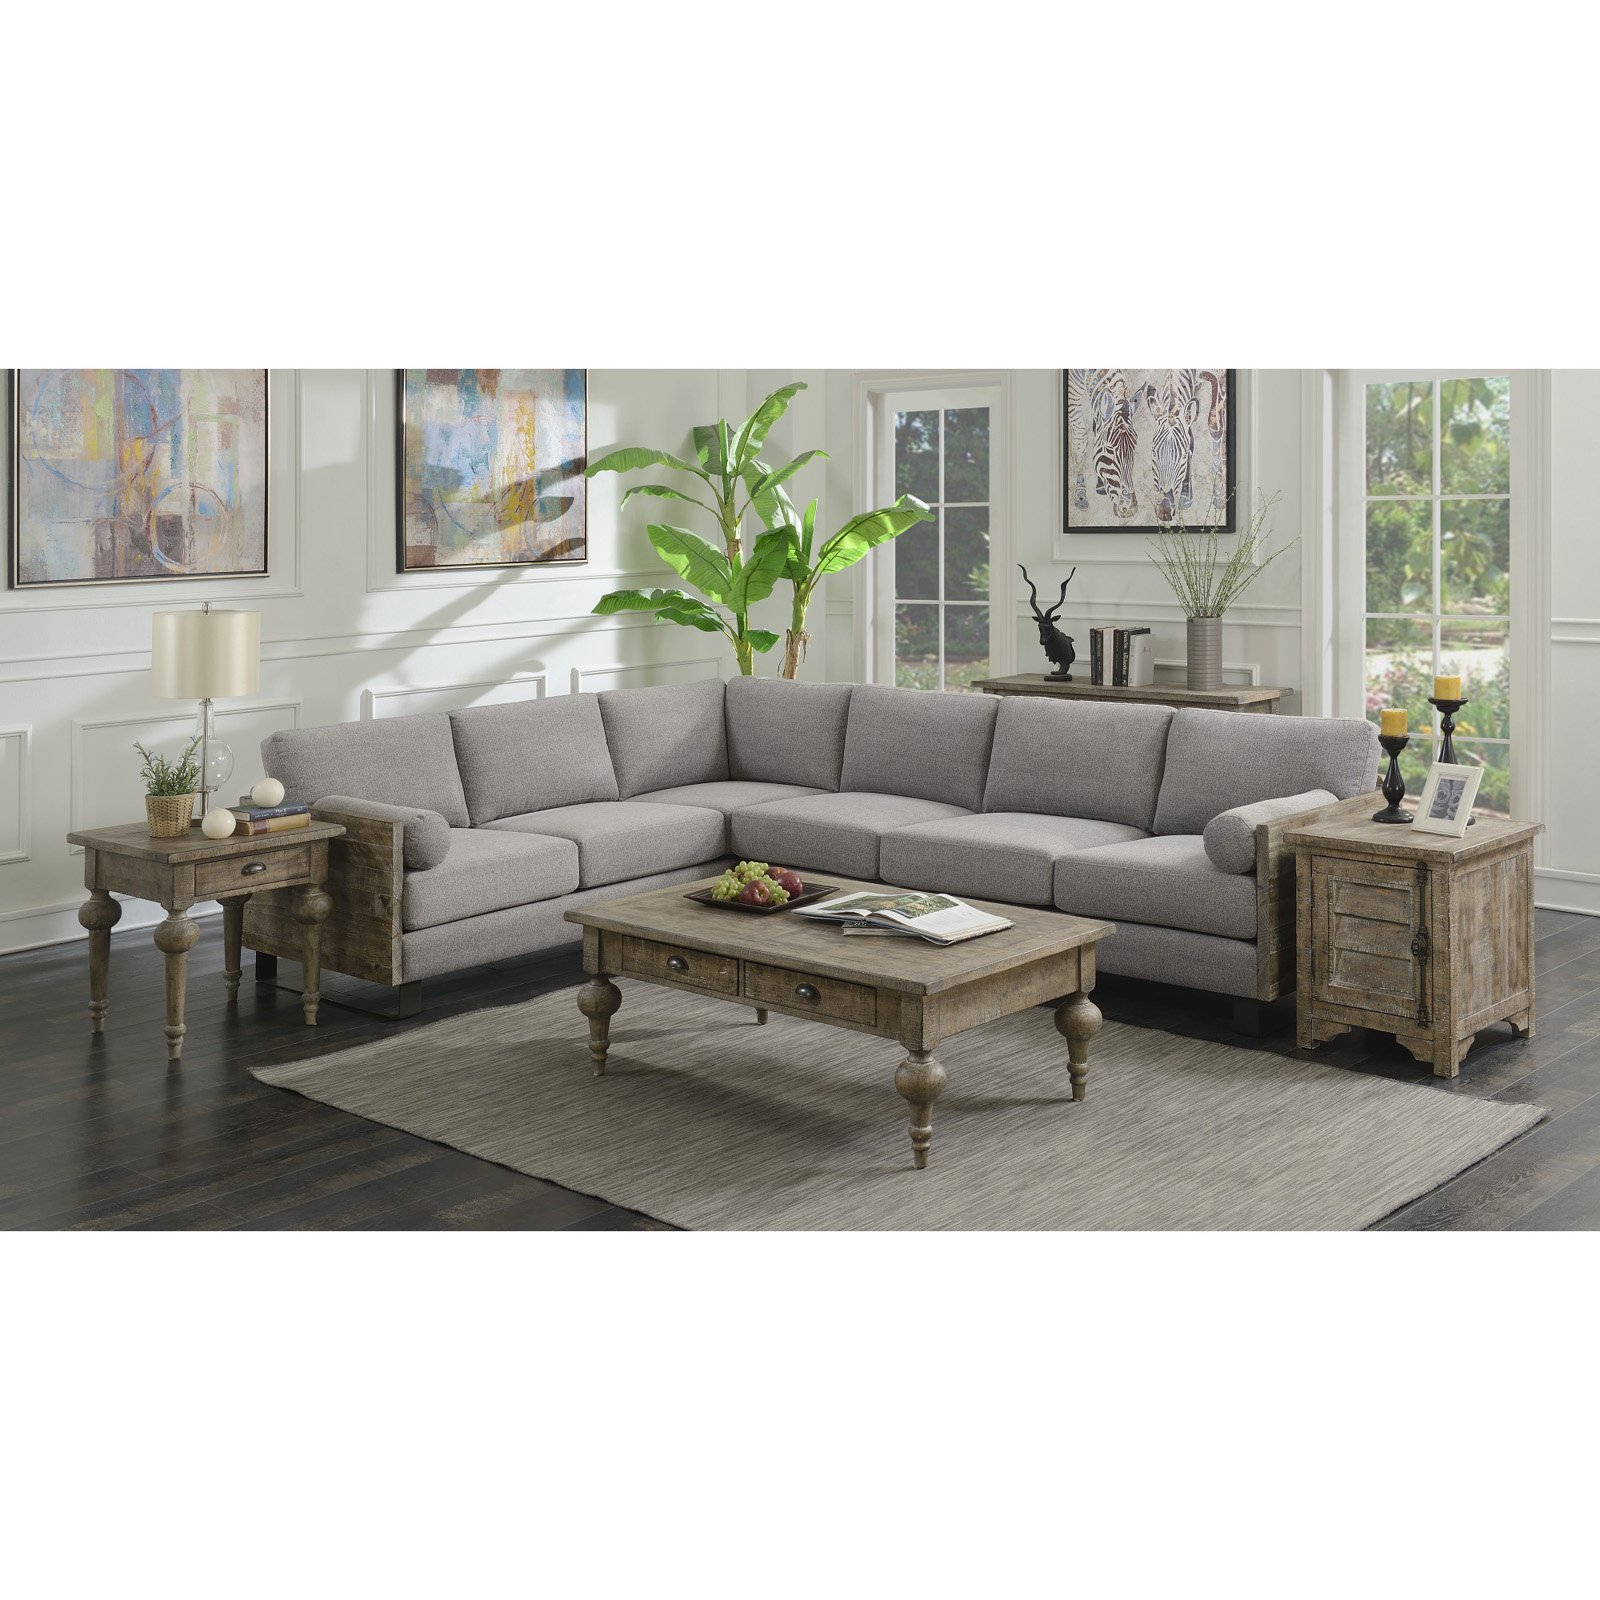 Pleasing Emerald Home Interlude 2 Piece Sectional With Bolster Ocoug Best Dining Table And Chair Ideas Images Ocougorg